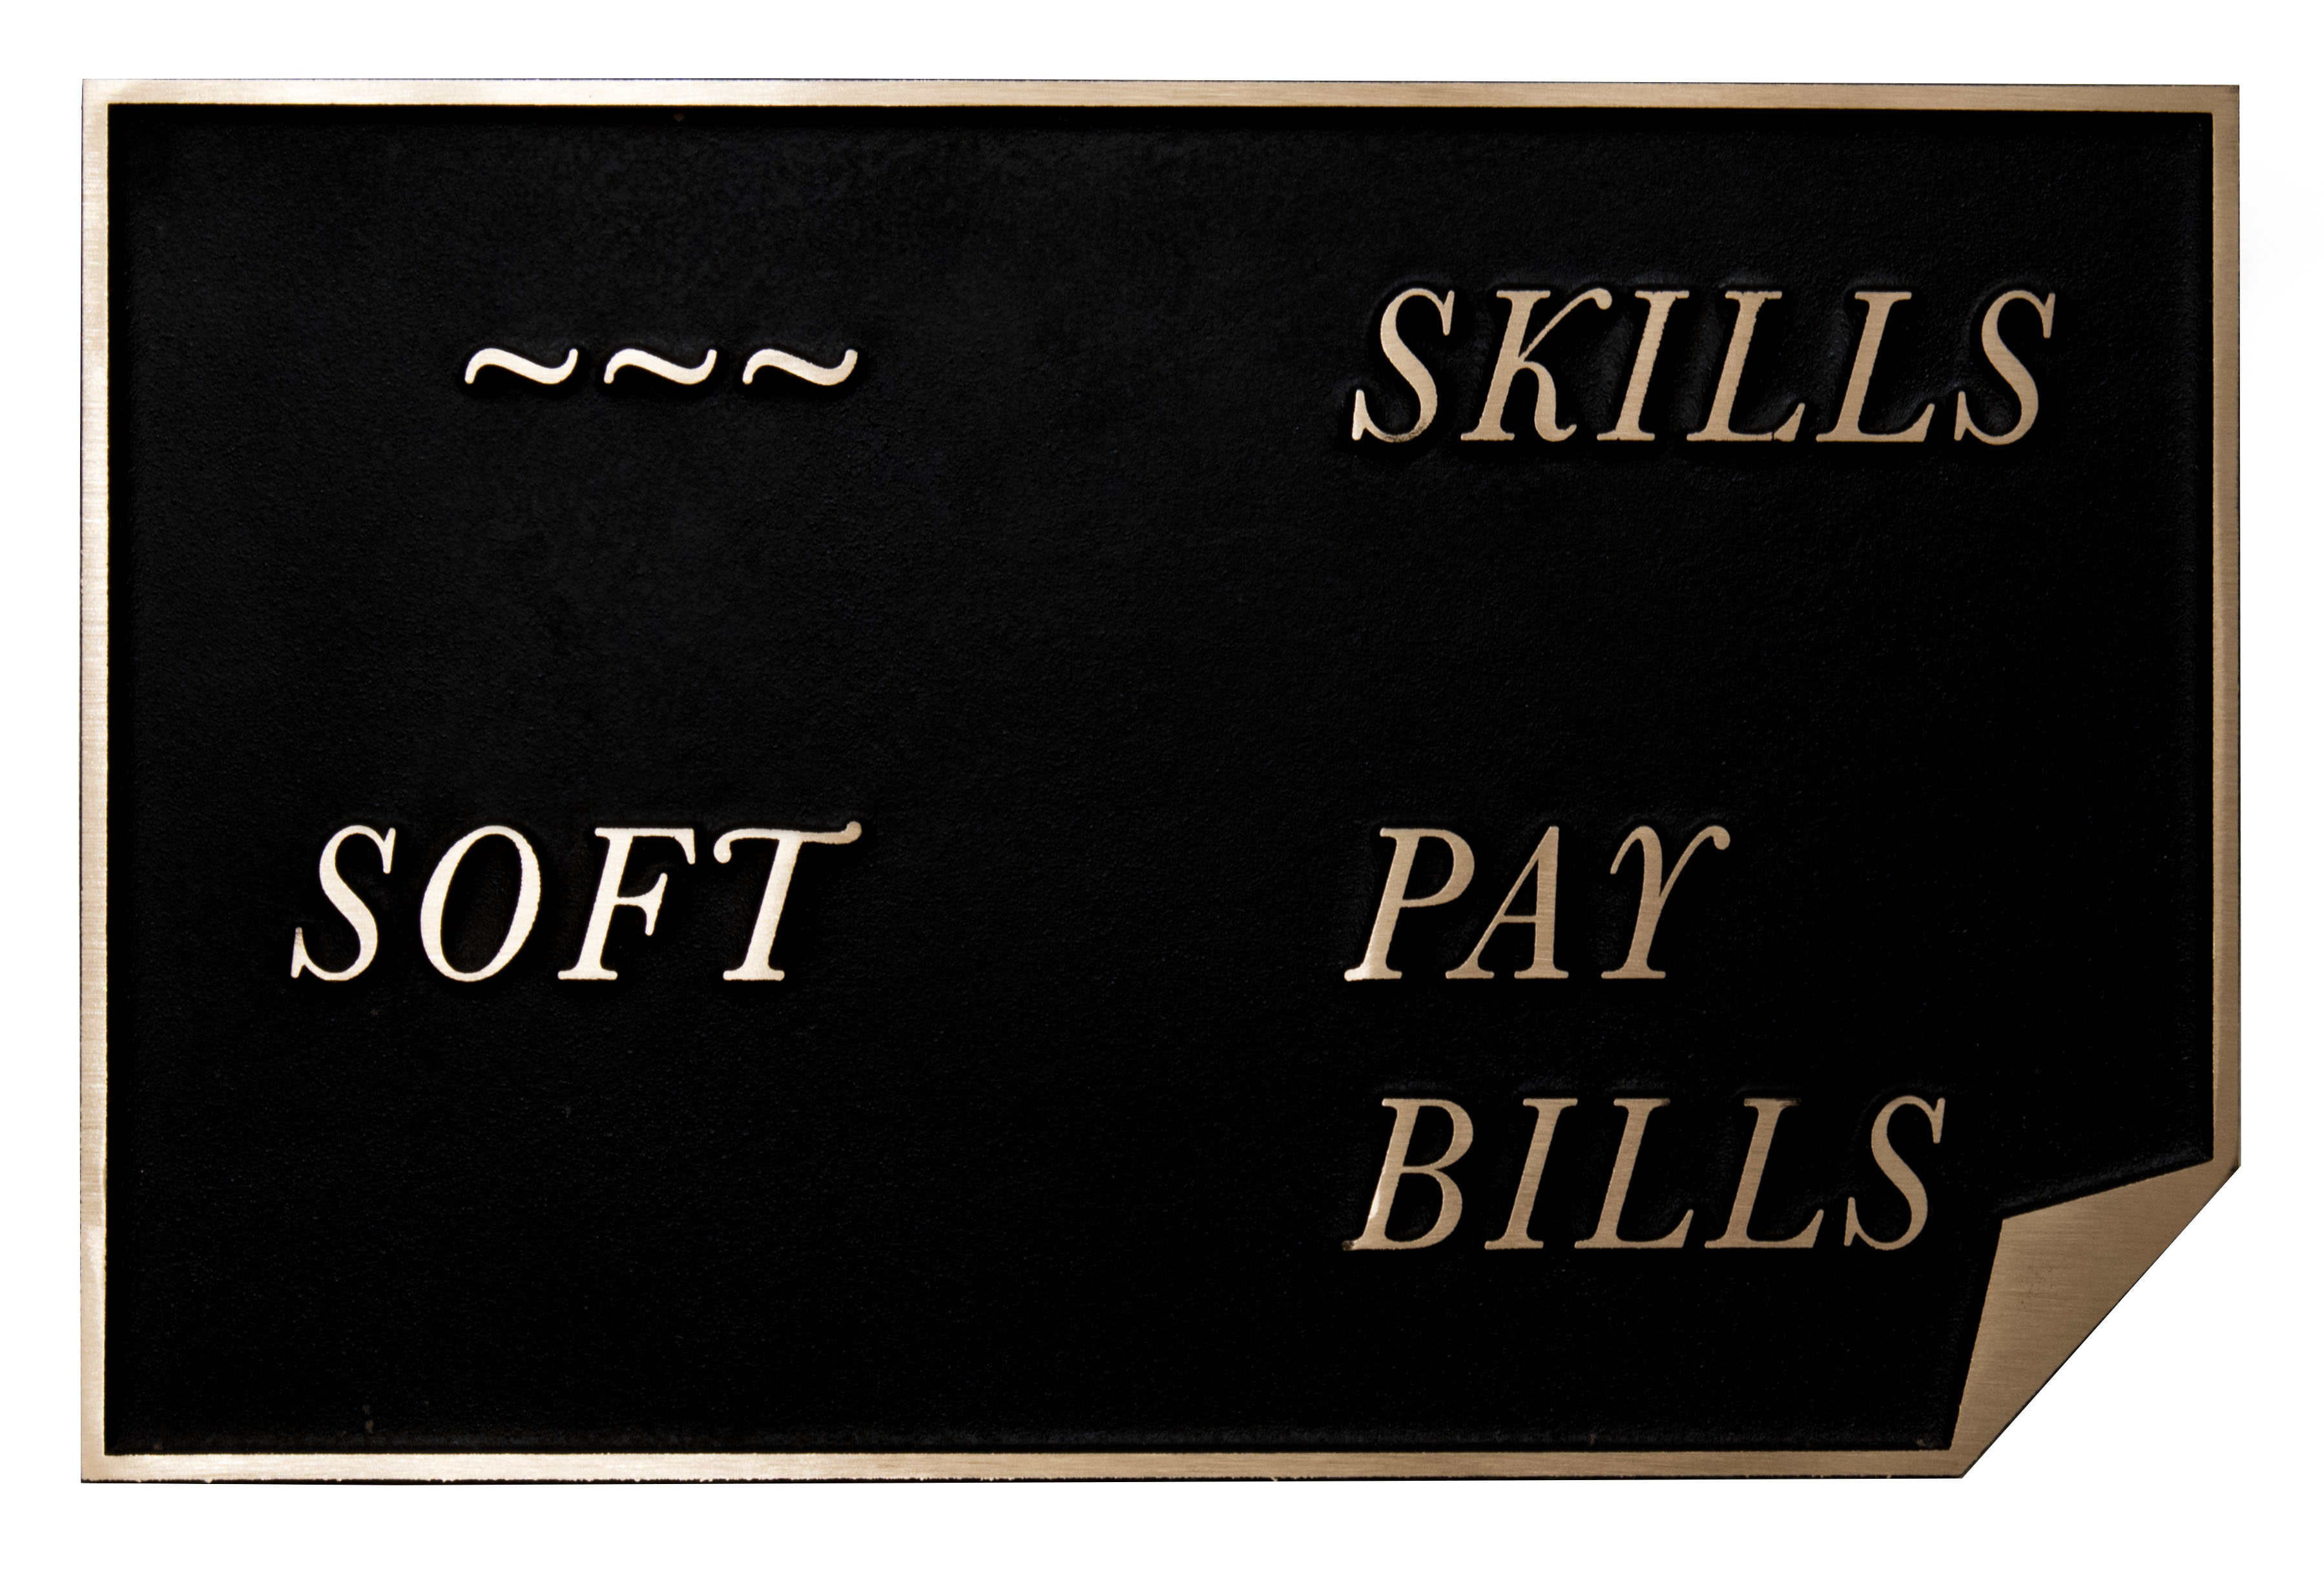 Agatha Gothe-Snape, 'Soft Skills Pay Bills', 2016, bronze, 18 x 28 x 1.5 cm, edition of 3 + 1AP. Photo: Sofia Freeman/The Commercial Gallery. Image courtesy the artist and The Commercial Gallery, Sydney